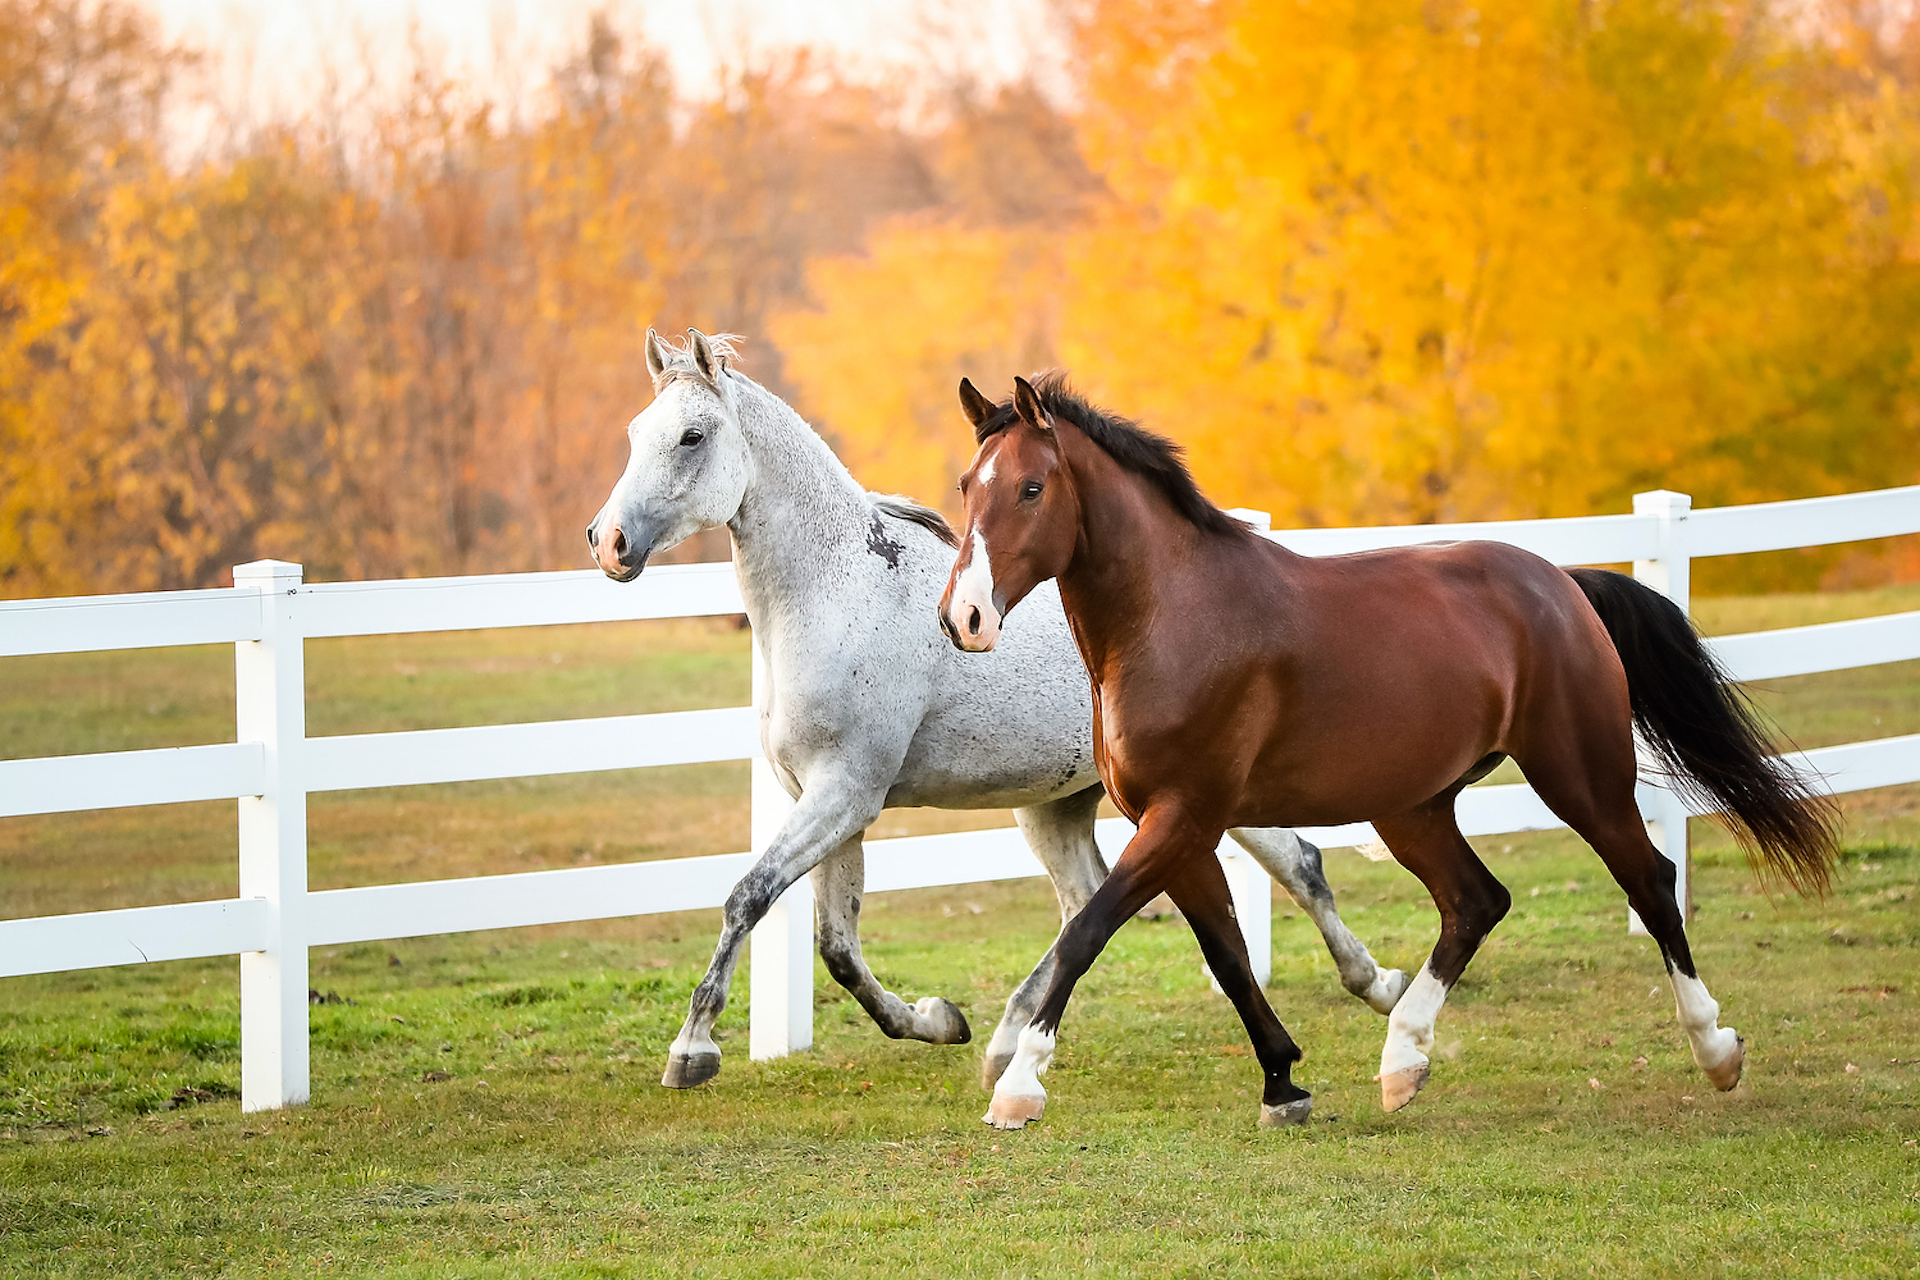 What's my horse's body condition score?